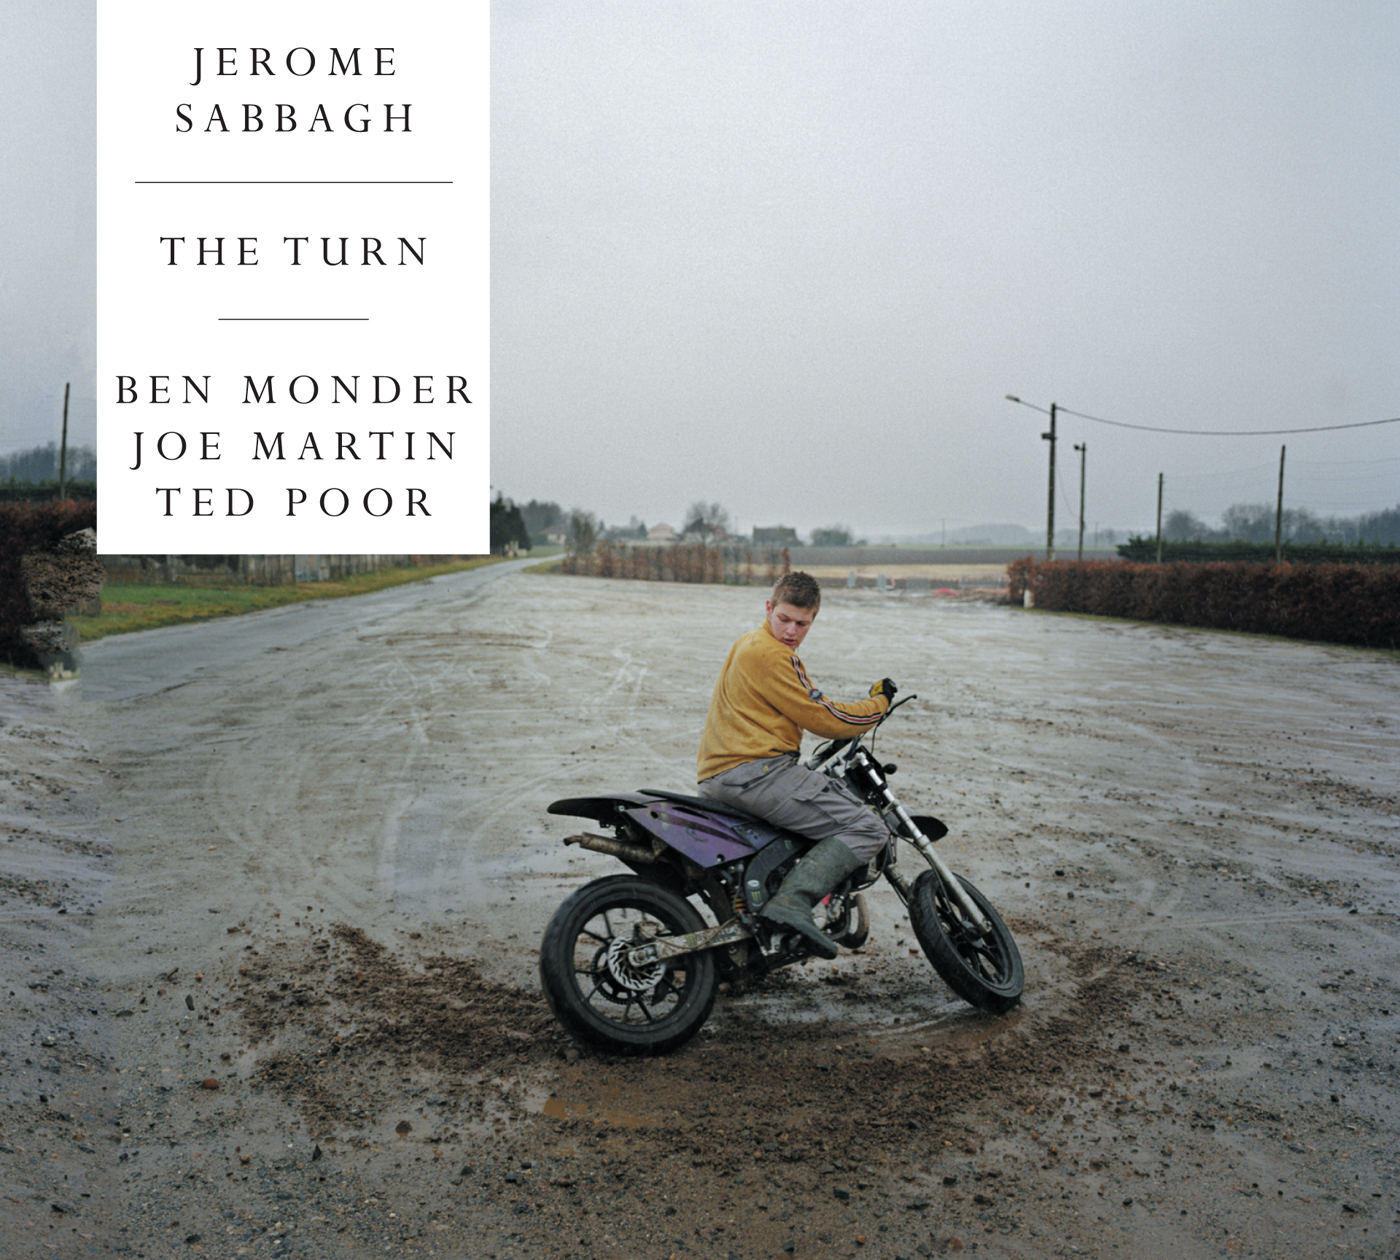 The Turn  by Jerome  Sabbagh cover